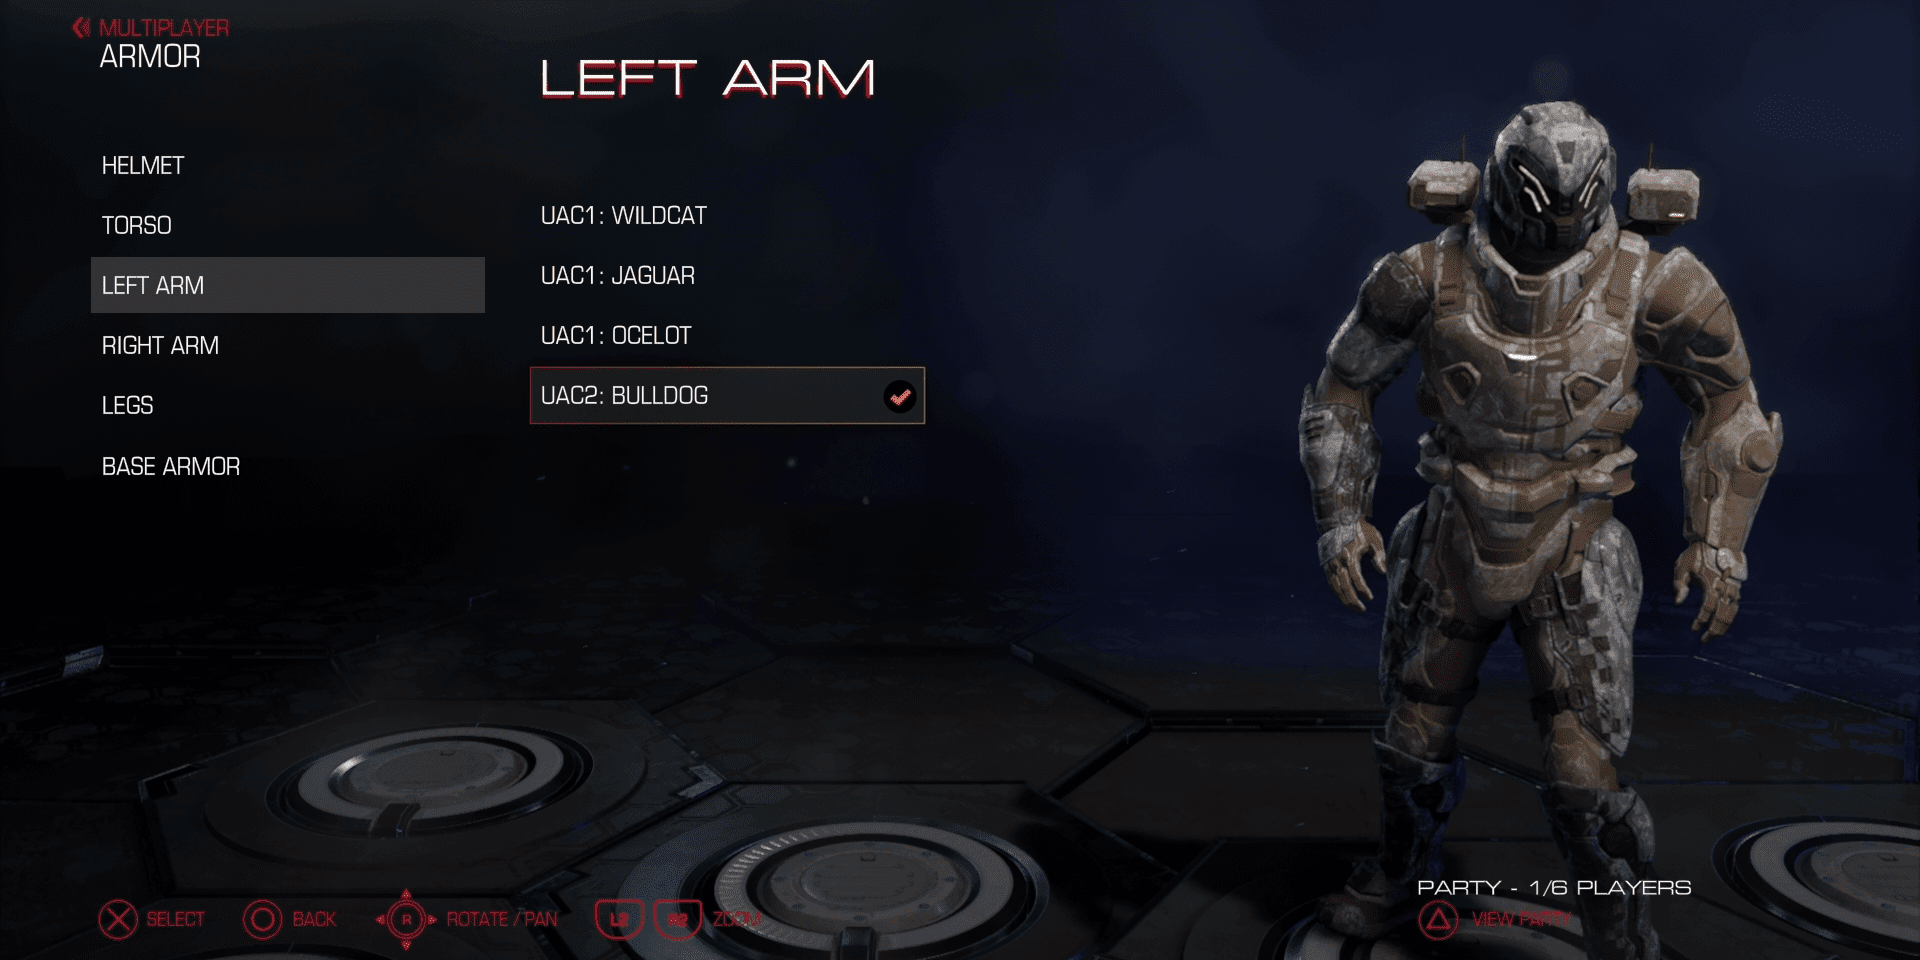 character-customization-is-a-somewhat-limited-but-welcome-addition-to-the-classic-multiplayer-exper